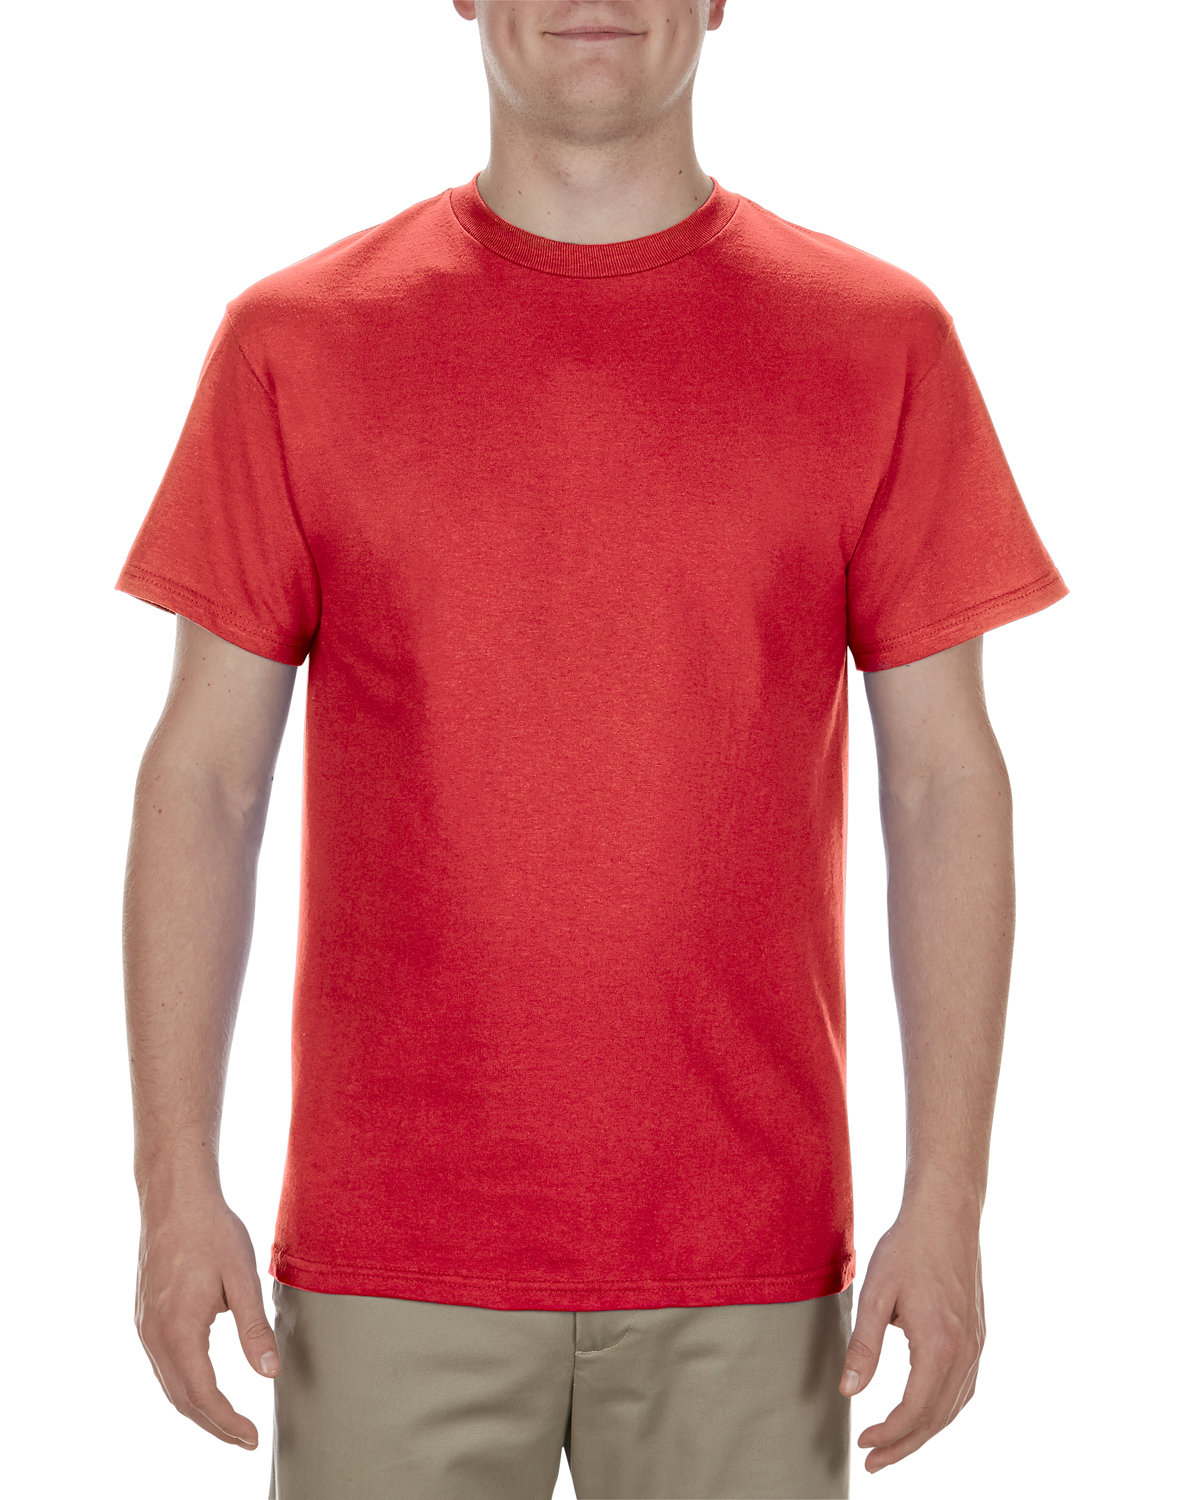 Alstyle Adult 5.1 oz., 100% Cotton T-Shirt RED